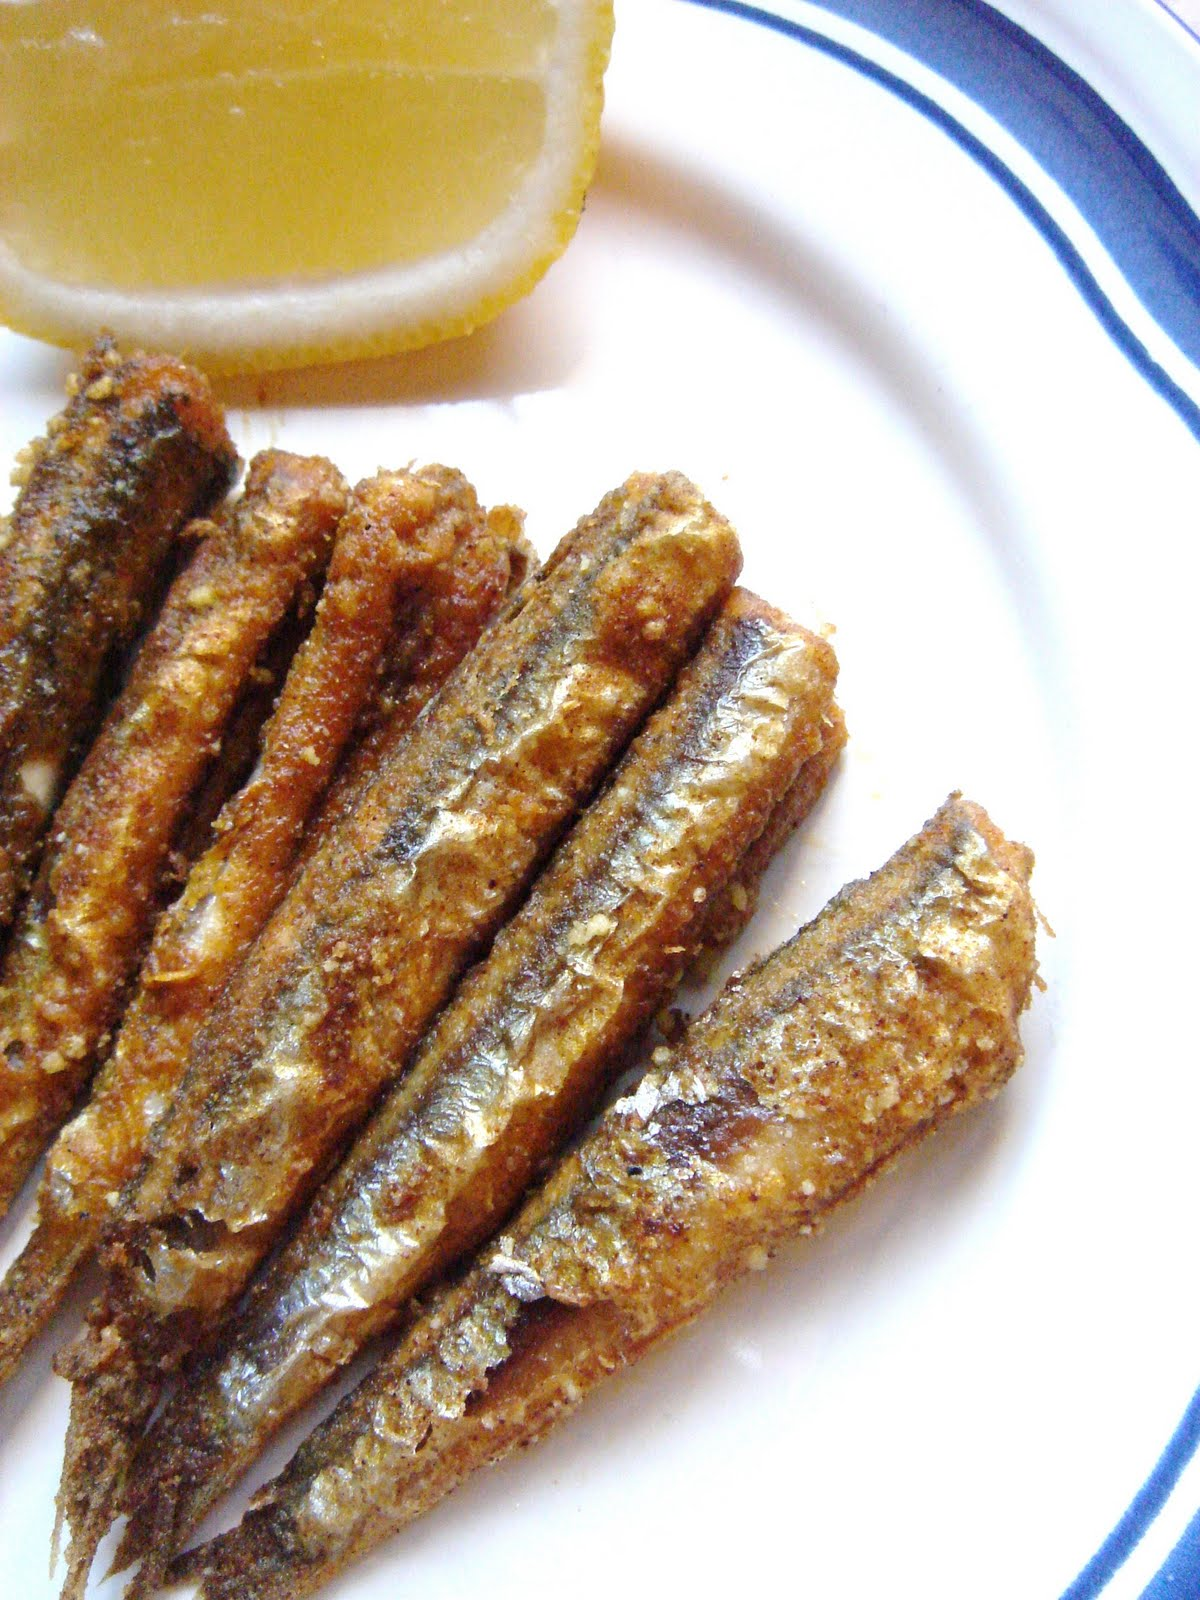 East meets West: Fried Fresh Anchovies (Alici)